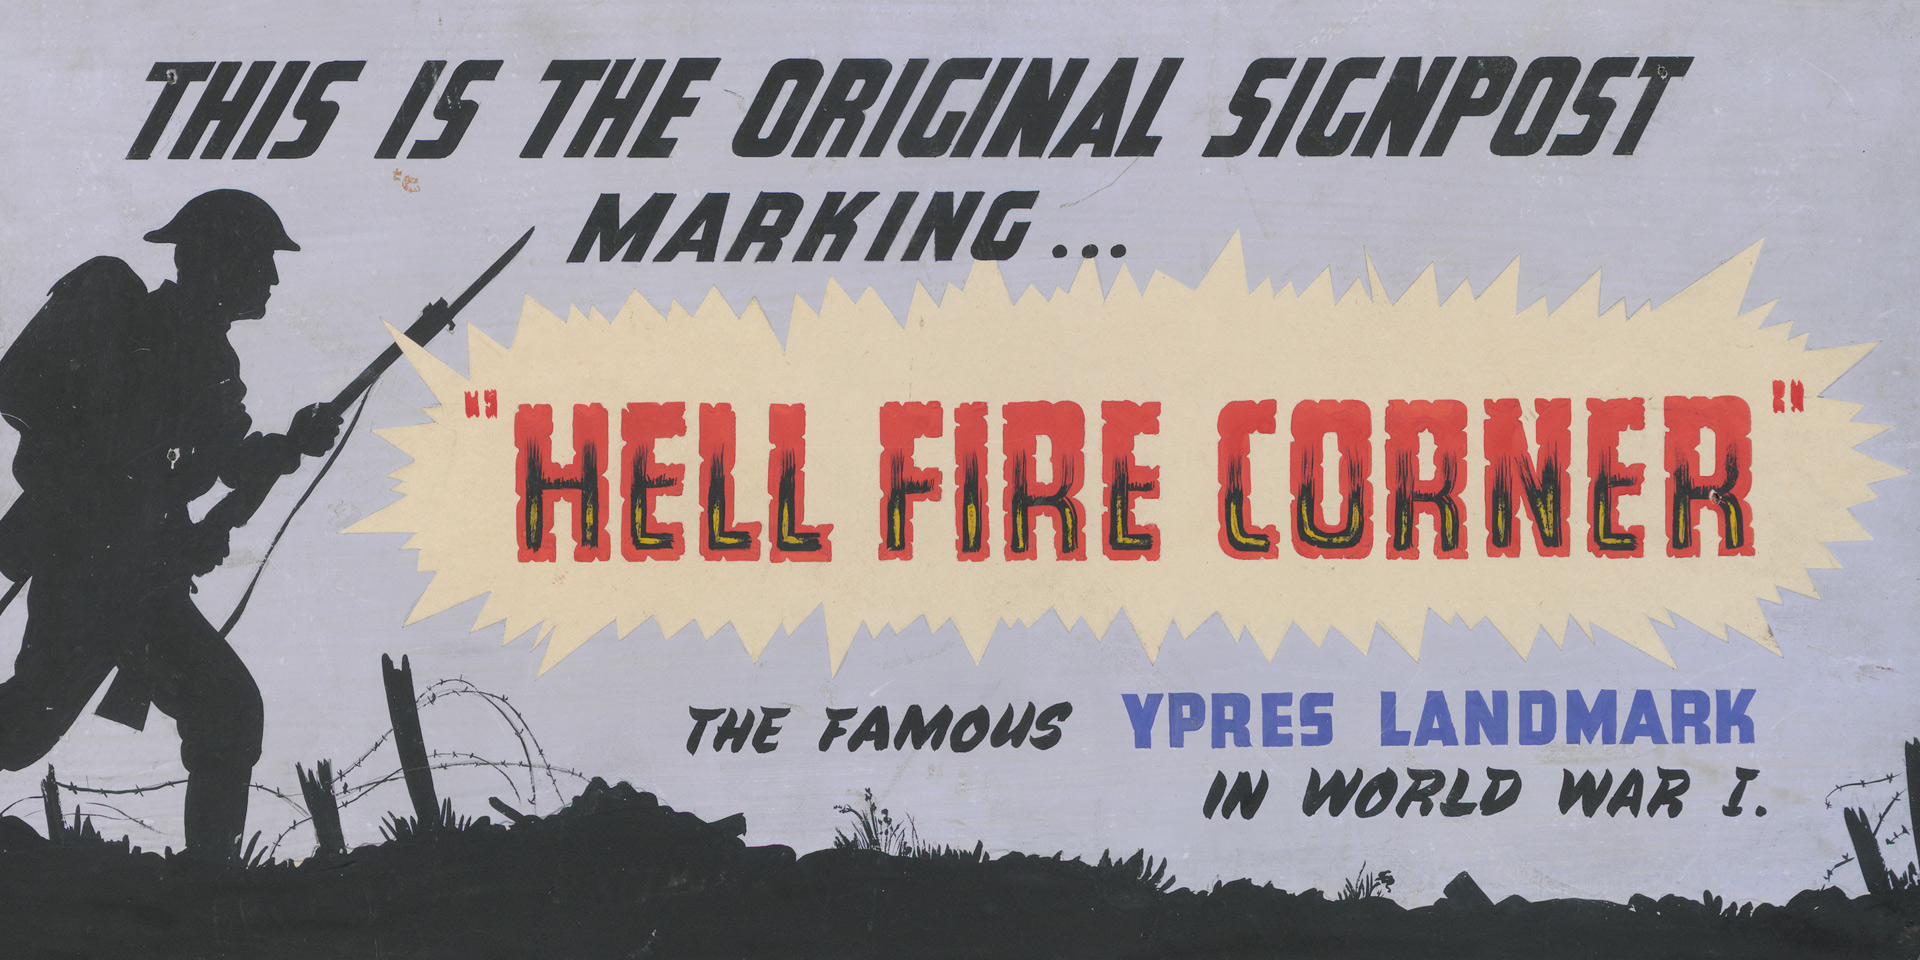 Advertising board used in Storie's shop to publicise the Hellfire Corner sign, c1950